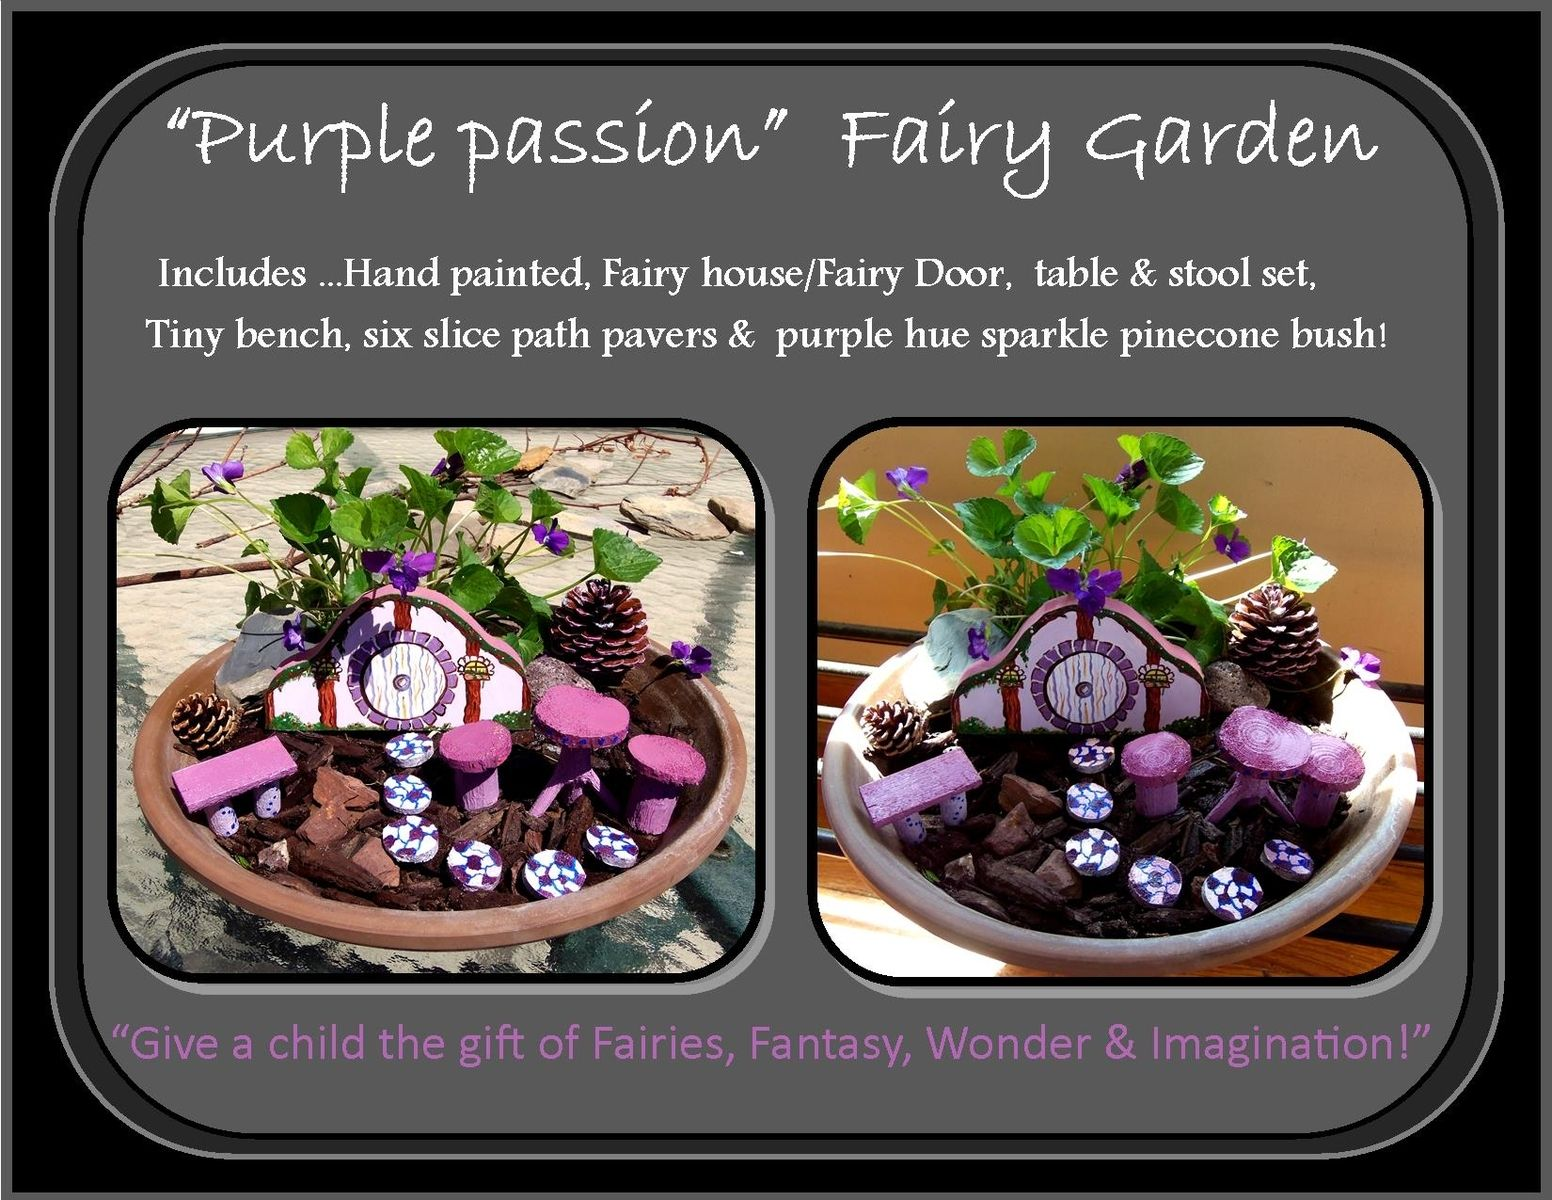 Handmade Fairy Garden Kits Fairy Garden Fairy FurniturePurple